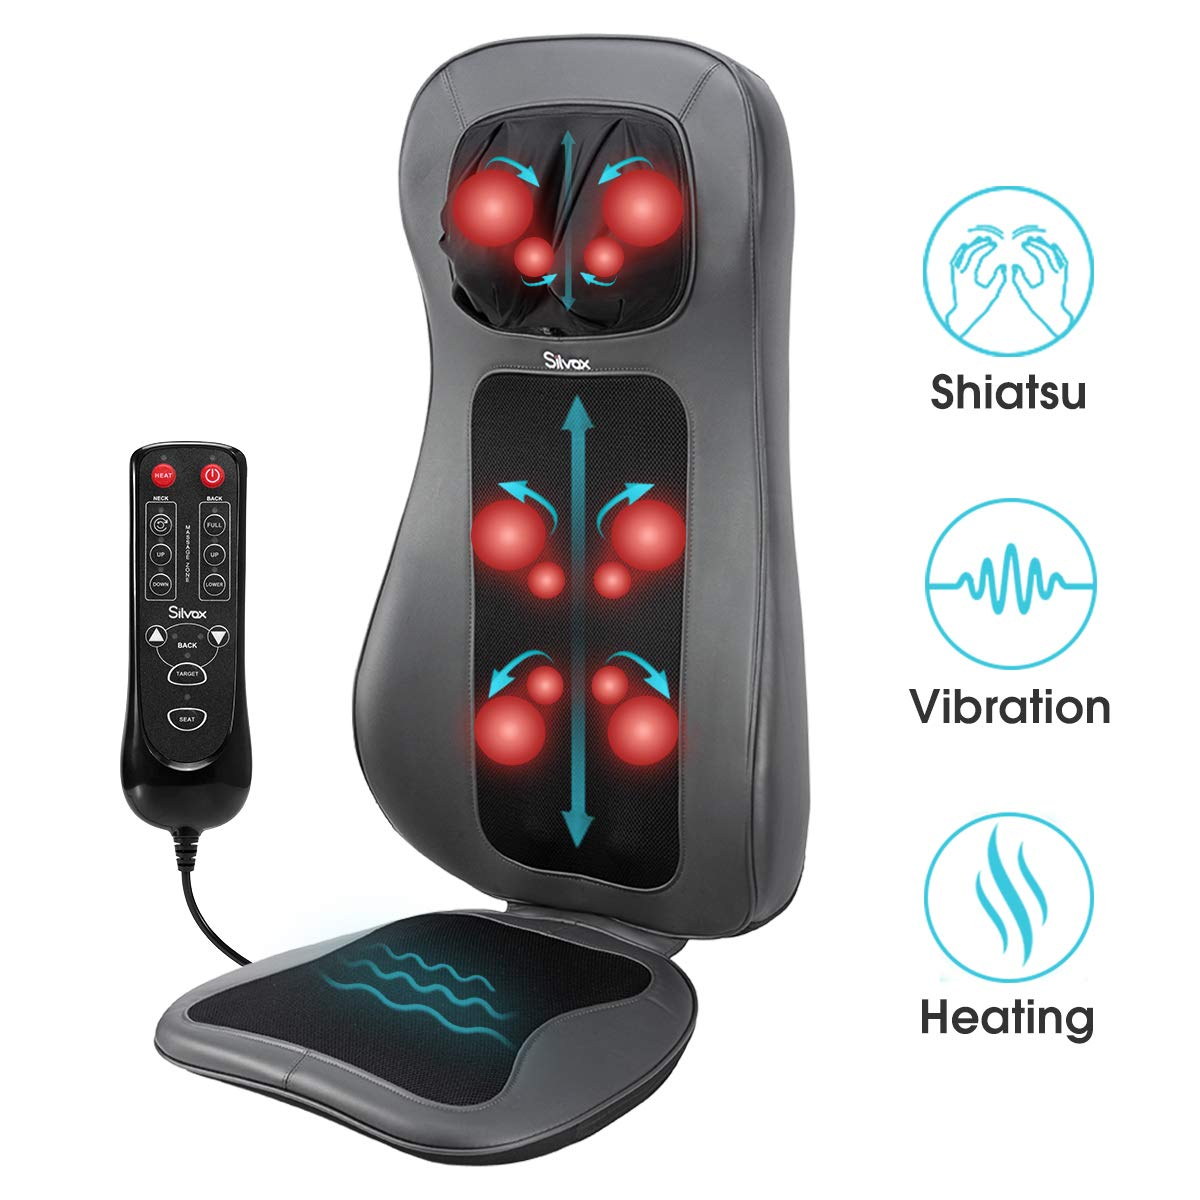 Silvox Shiatsu Neck Back Massager with Heat - Massage Chair Pad with 12 Deep Tissue Kneading Nodes, Neck Height Adjustable, Vibration on Seat Cushion, Relieve Muscle Pain - Office, Home Car